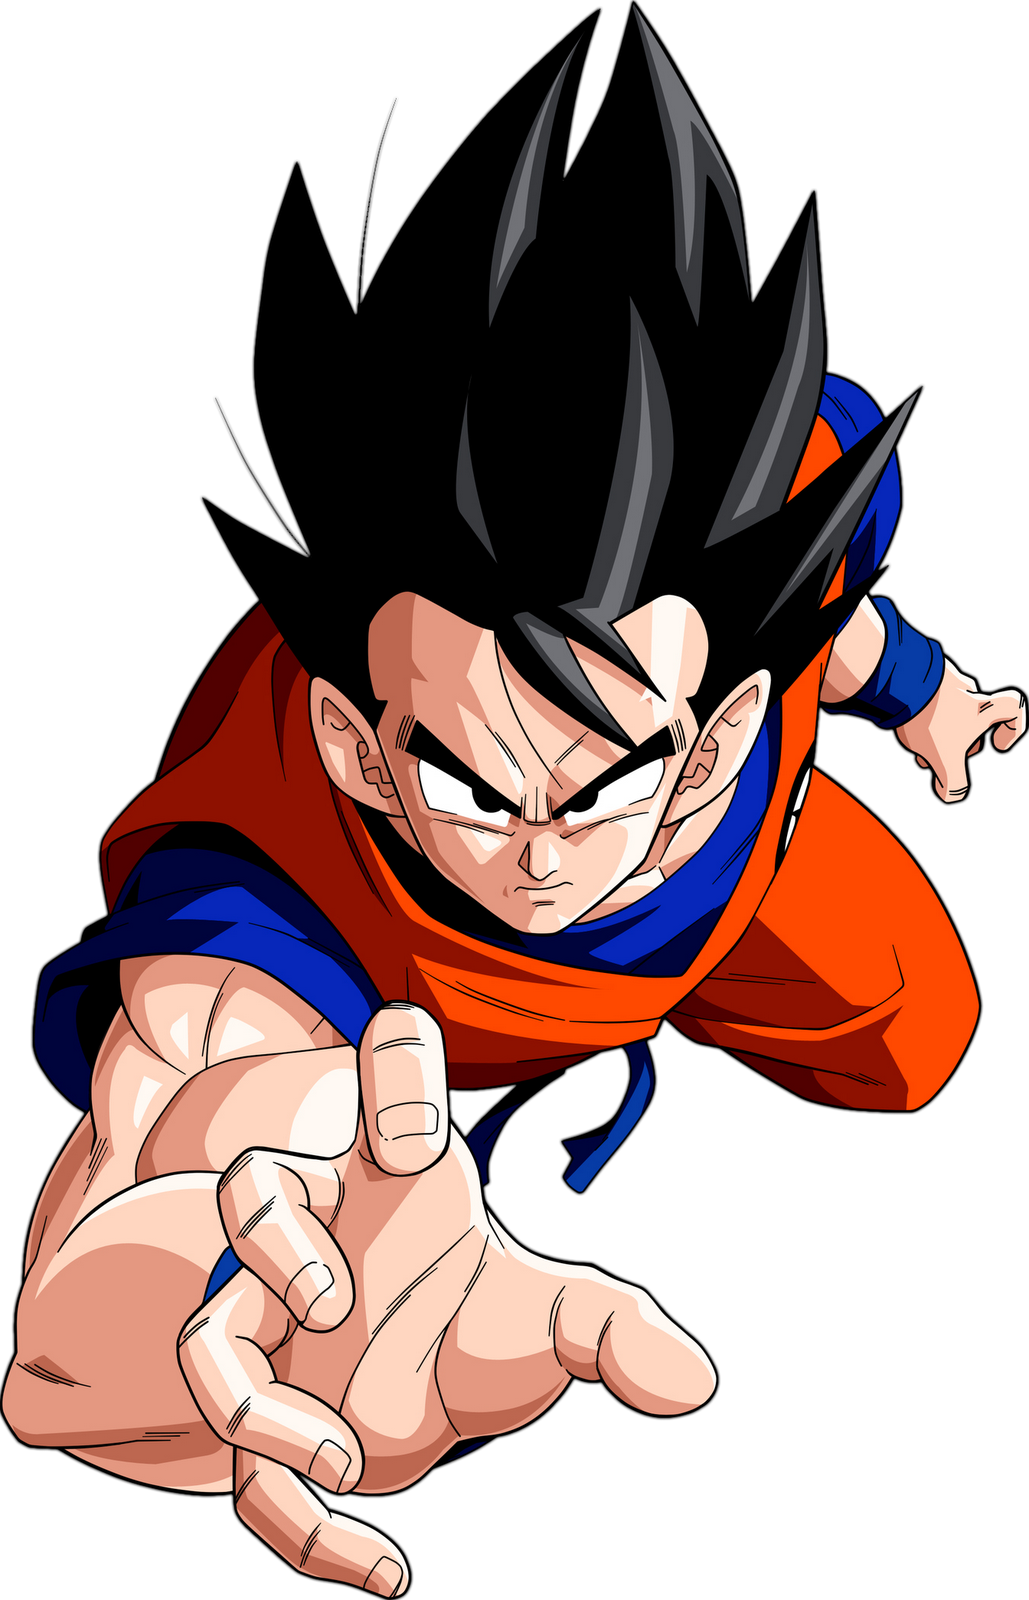 Dragon ball png. Image render z goku